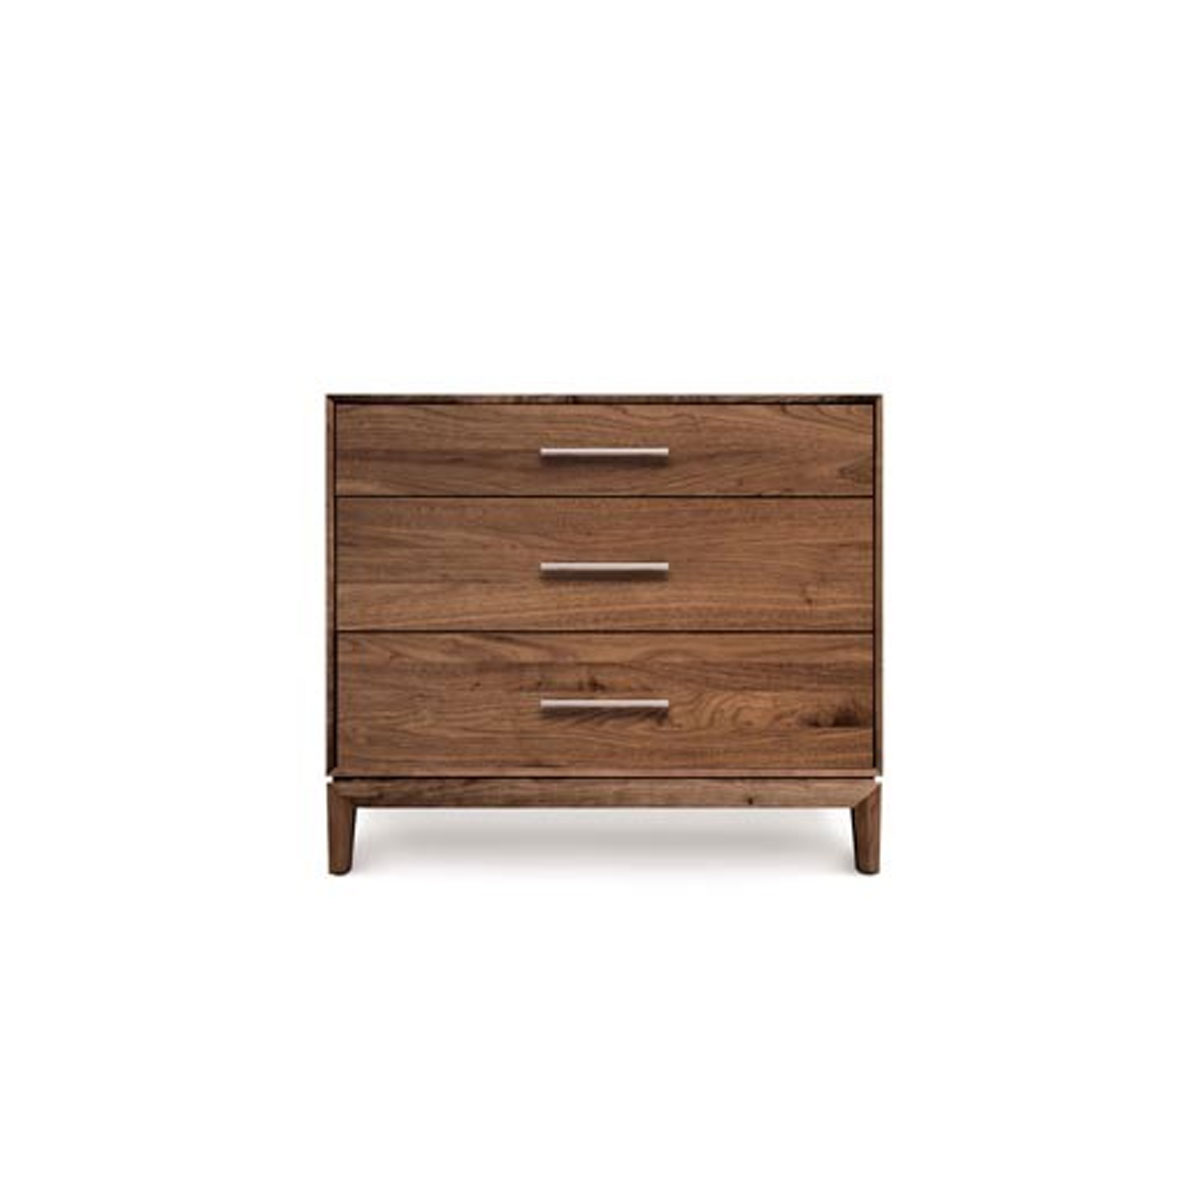 Copeland Mansfield 3 Drawer in Walnut